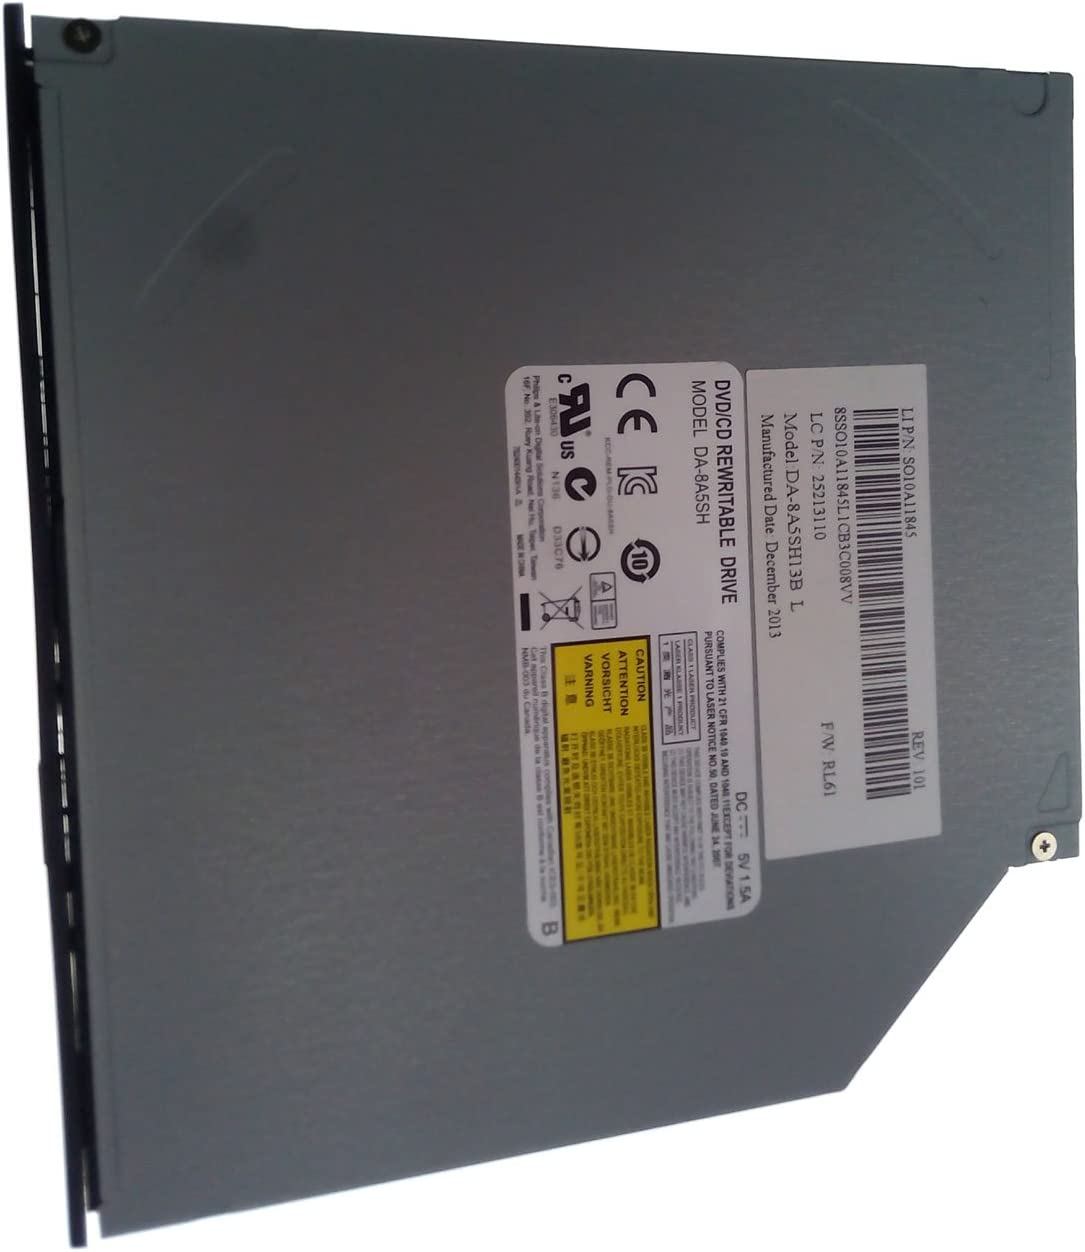 DVD//CD REWRITABLE DRIV DA-8A5SH for Asus X751M X550C X550CA X550CC X550LB Acer 5333 5733 eMachines E529 Lenovo IdeaPad S510p